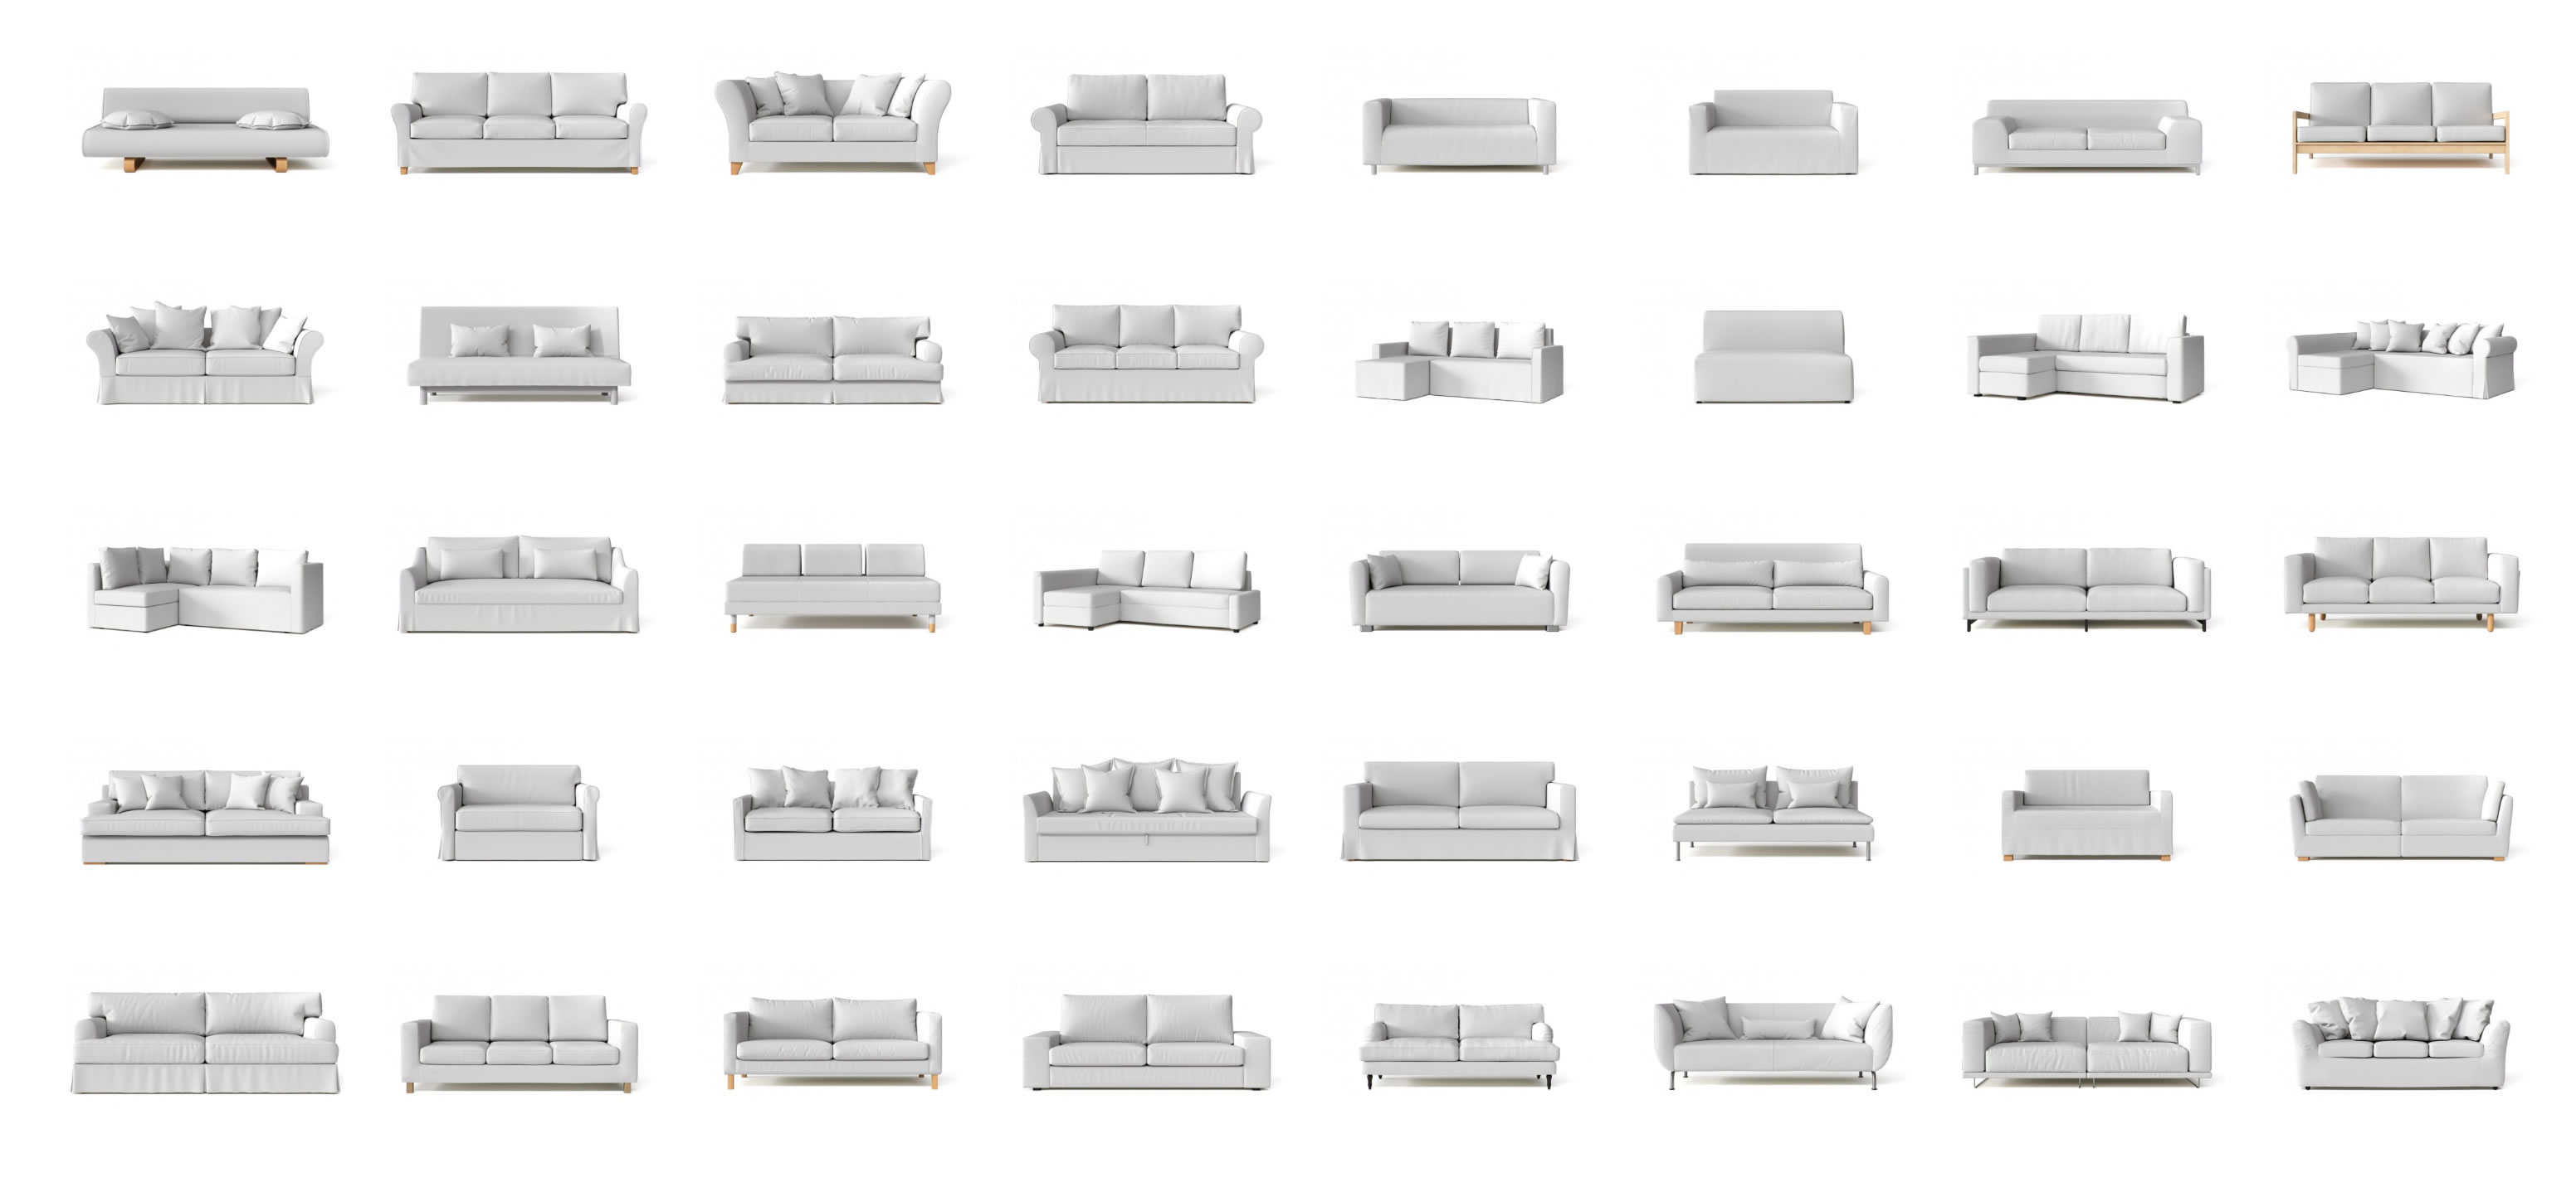 21 Different Types of Sofas and Slipcoverability - What's Mine?